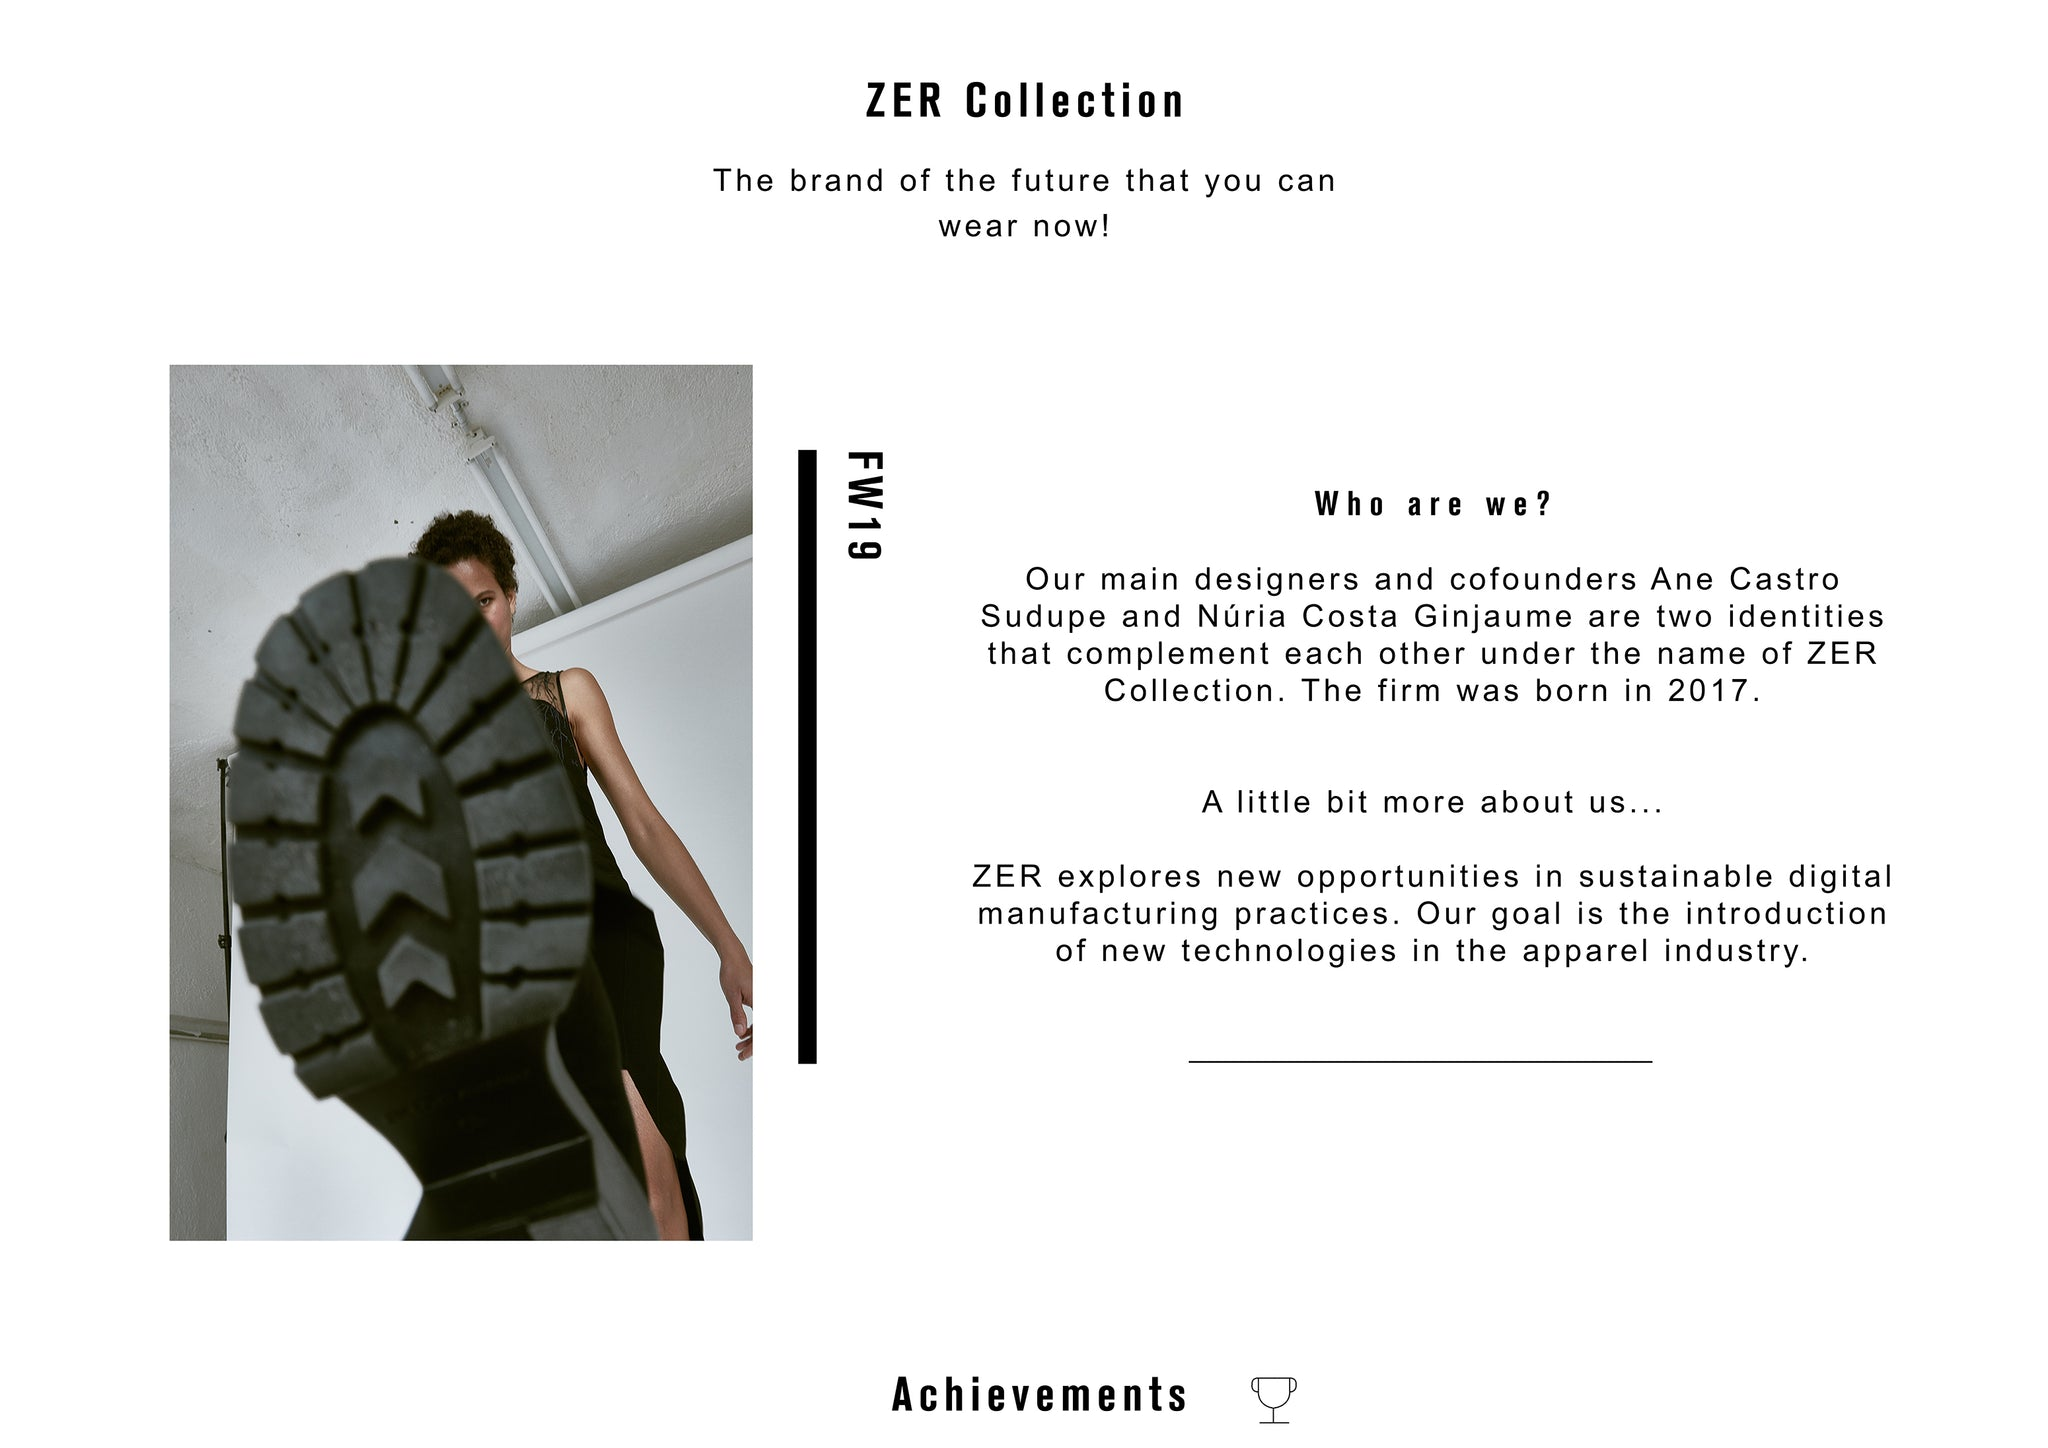 About ZER Collection, the brand of the future that you can wear today. ZER Collectors, Research